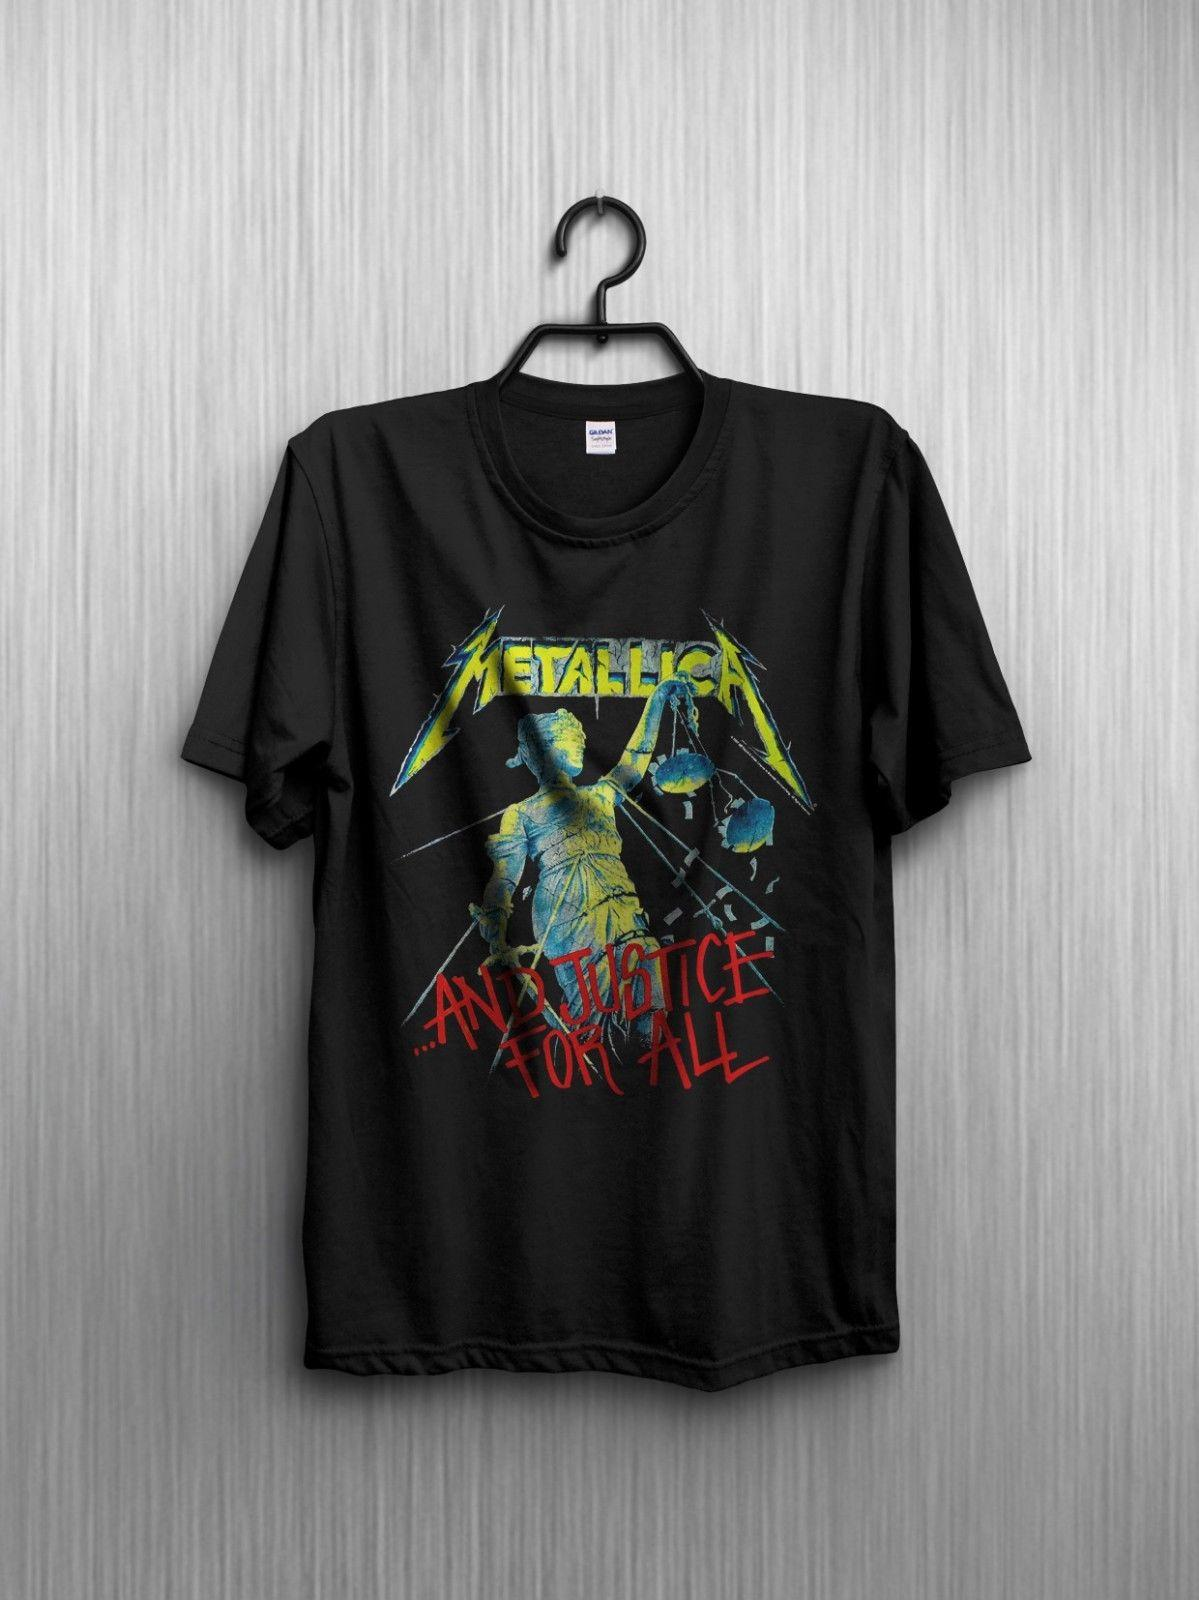 fa93d54d Vintage T Shirt 1988 Metallica And Justice For All Tour Reprint Funny  Unisex Casual Tee Gift Tees Shirts T Shirt Site From Noveltgifts, $12.96|  DHgate.Com